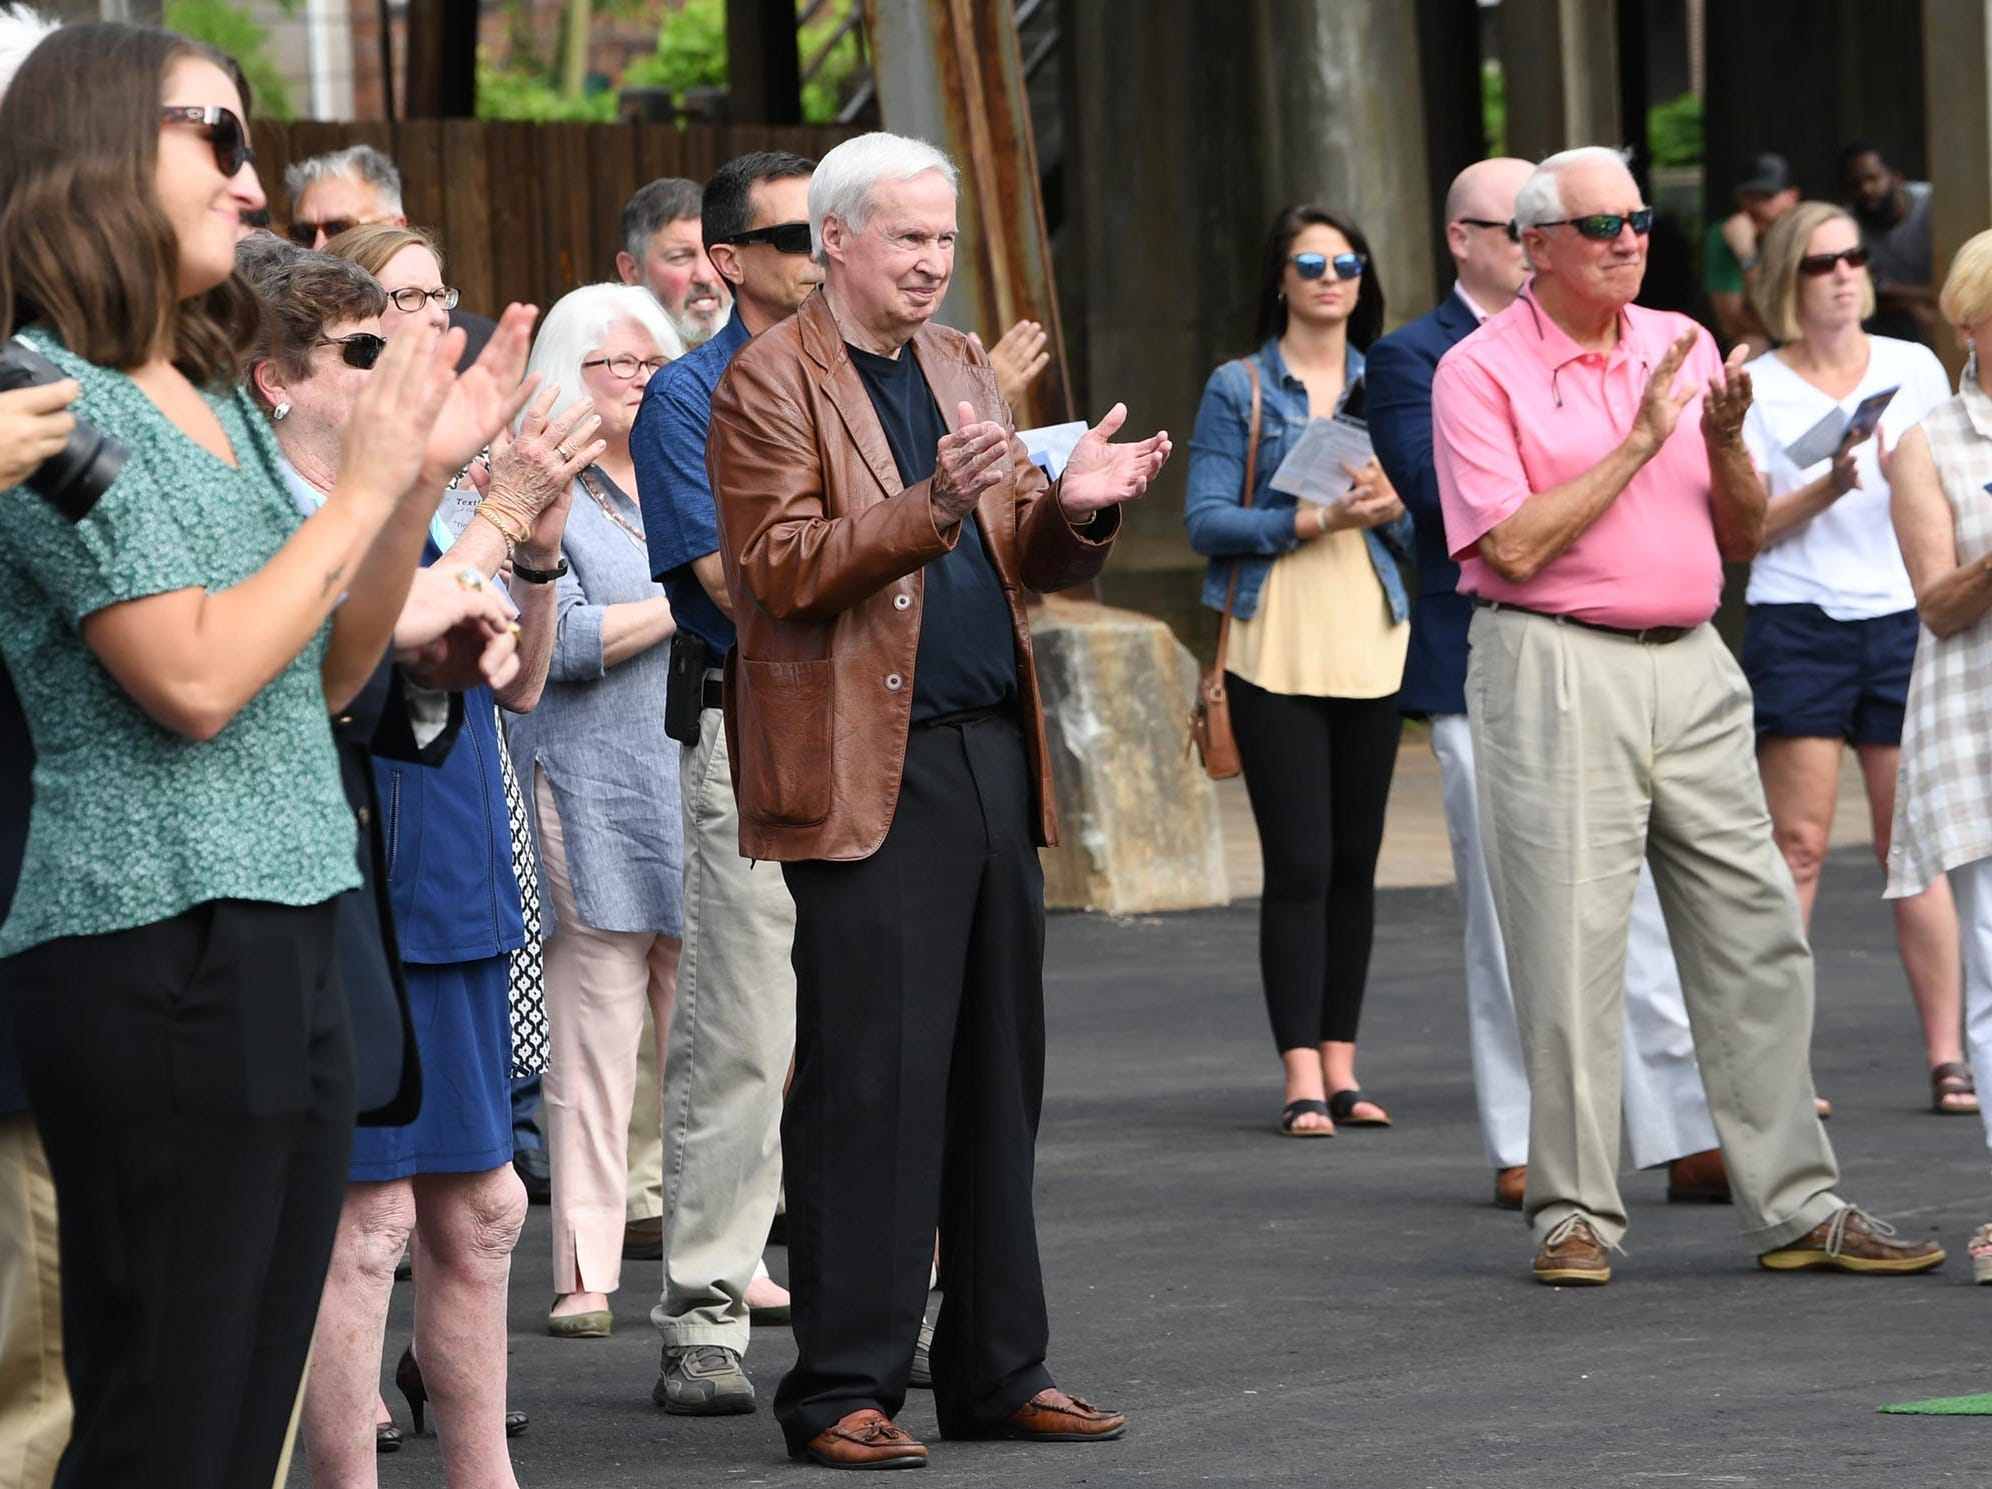 Andersonians applaud after officials unveil the Under the bridge project called Textile Point in downtown Anderson Thursday, May 9, 2019. Scott Foster of Anderson designed the monument honoring years of textile mills in Anderson, with support partners from To Benefit Anderson, South Carolina Heritage Corridor, the Rotary Club of Anderson, and the City of Anderson.